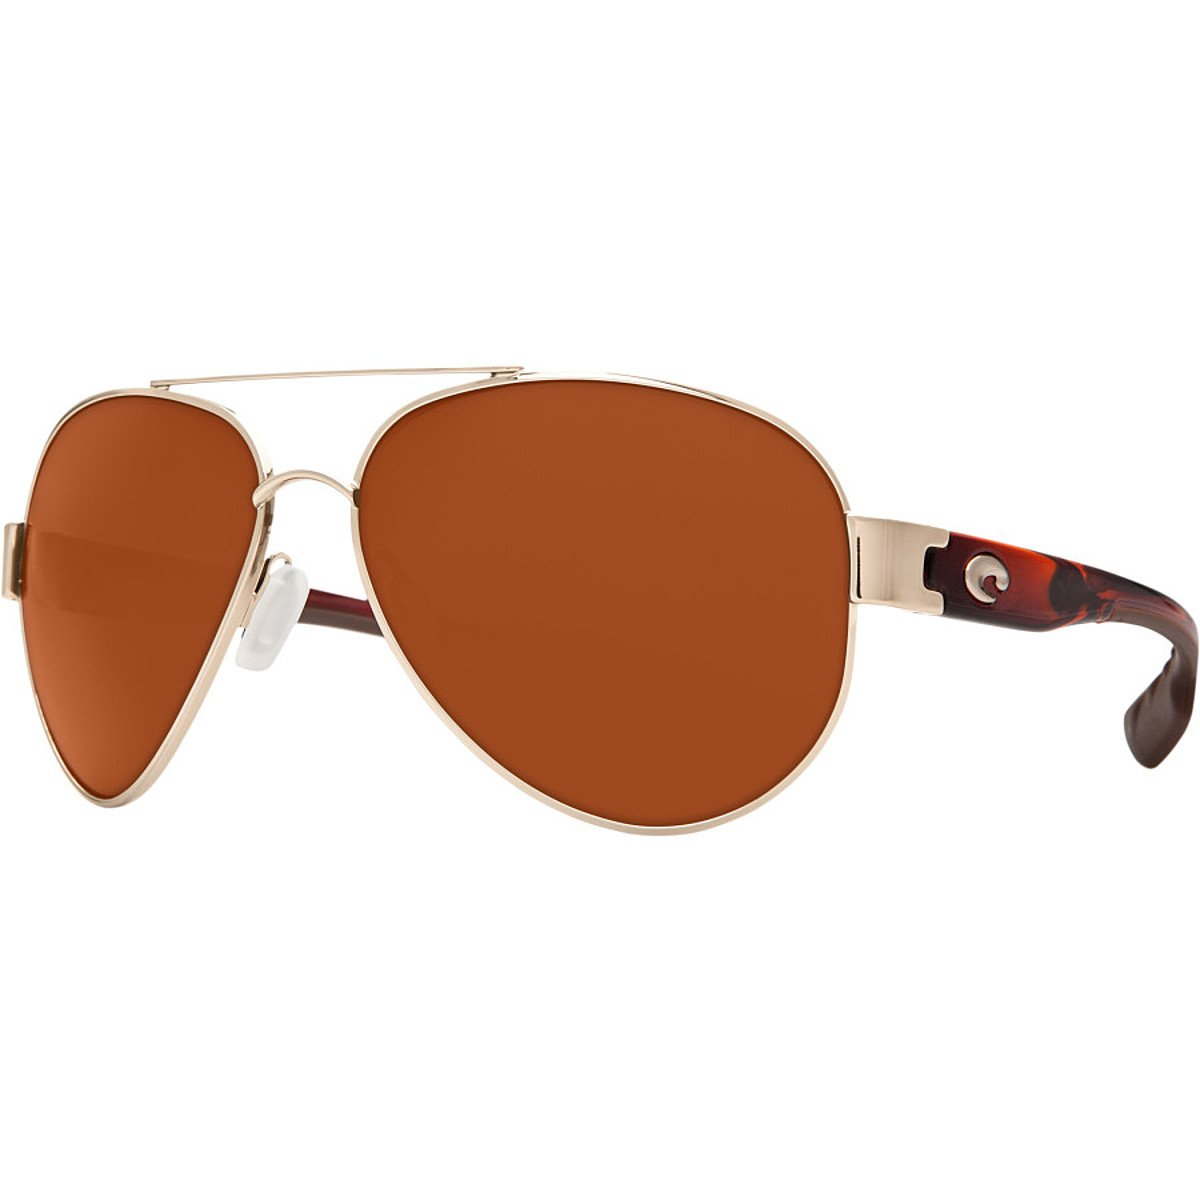 Costa Del Mar Mens South Point Sunglasses Rose Gold with Light Tortoise Frame Temples Copper Pro-Motion Distributing Direct SO84OCGLP